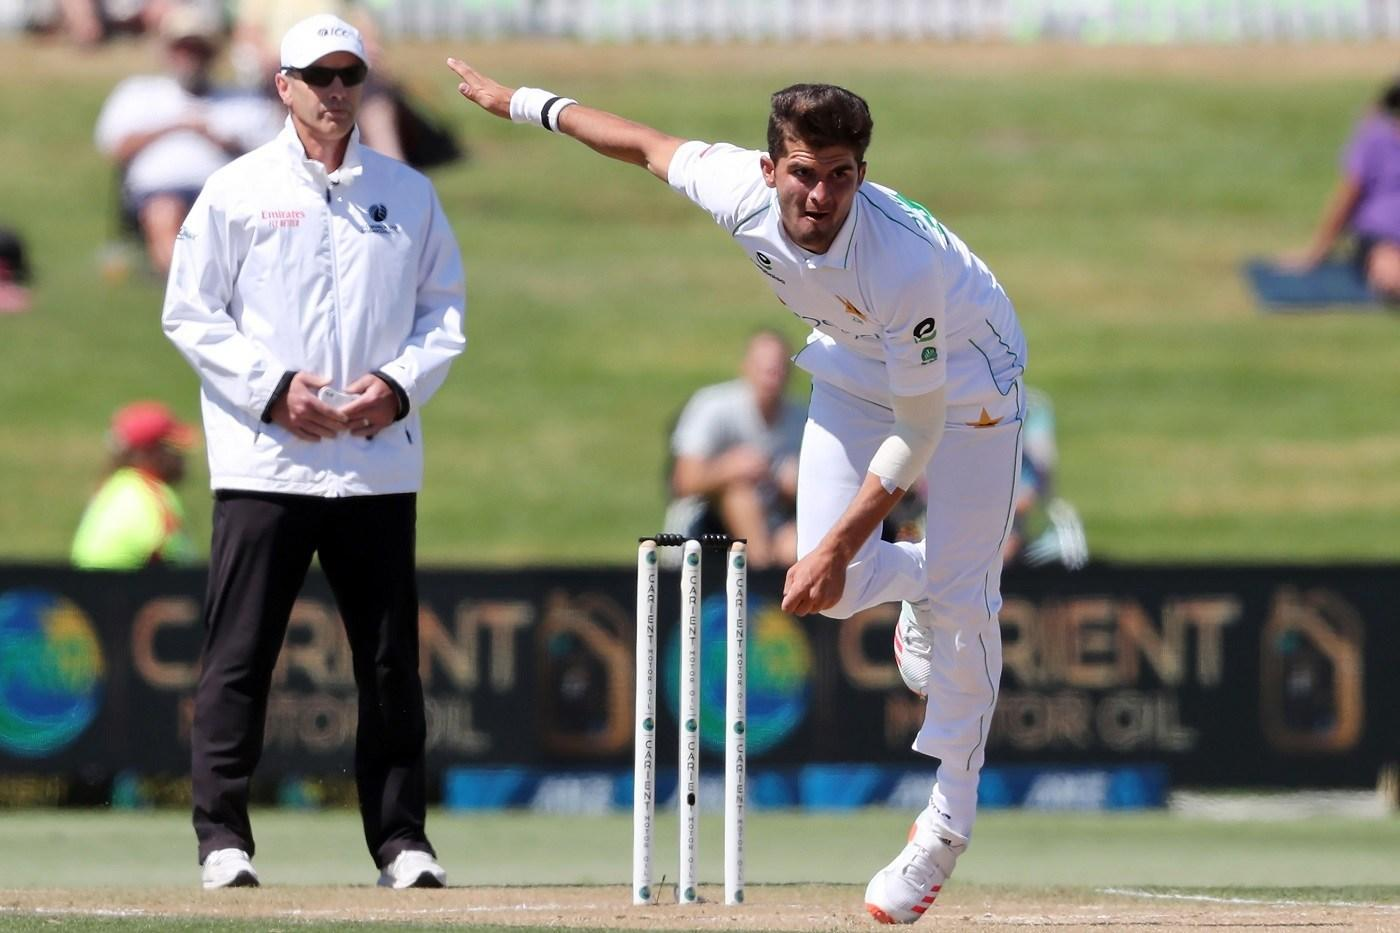 Team management wanted to rest Shaheen Afridi but he refused